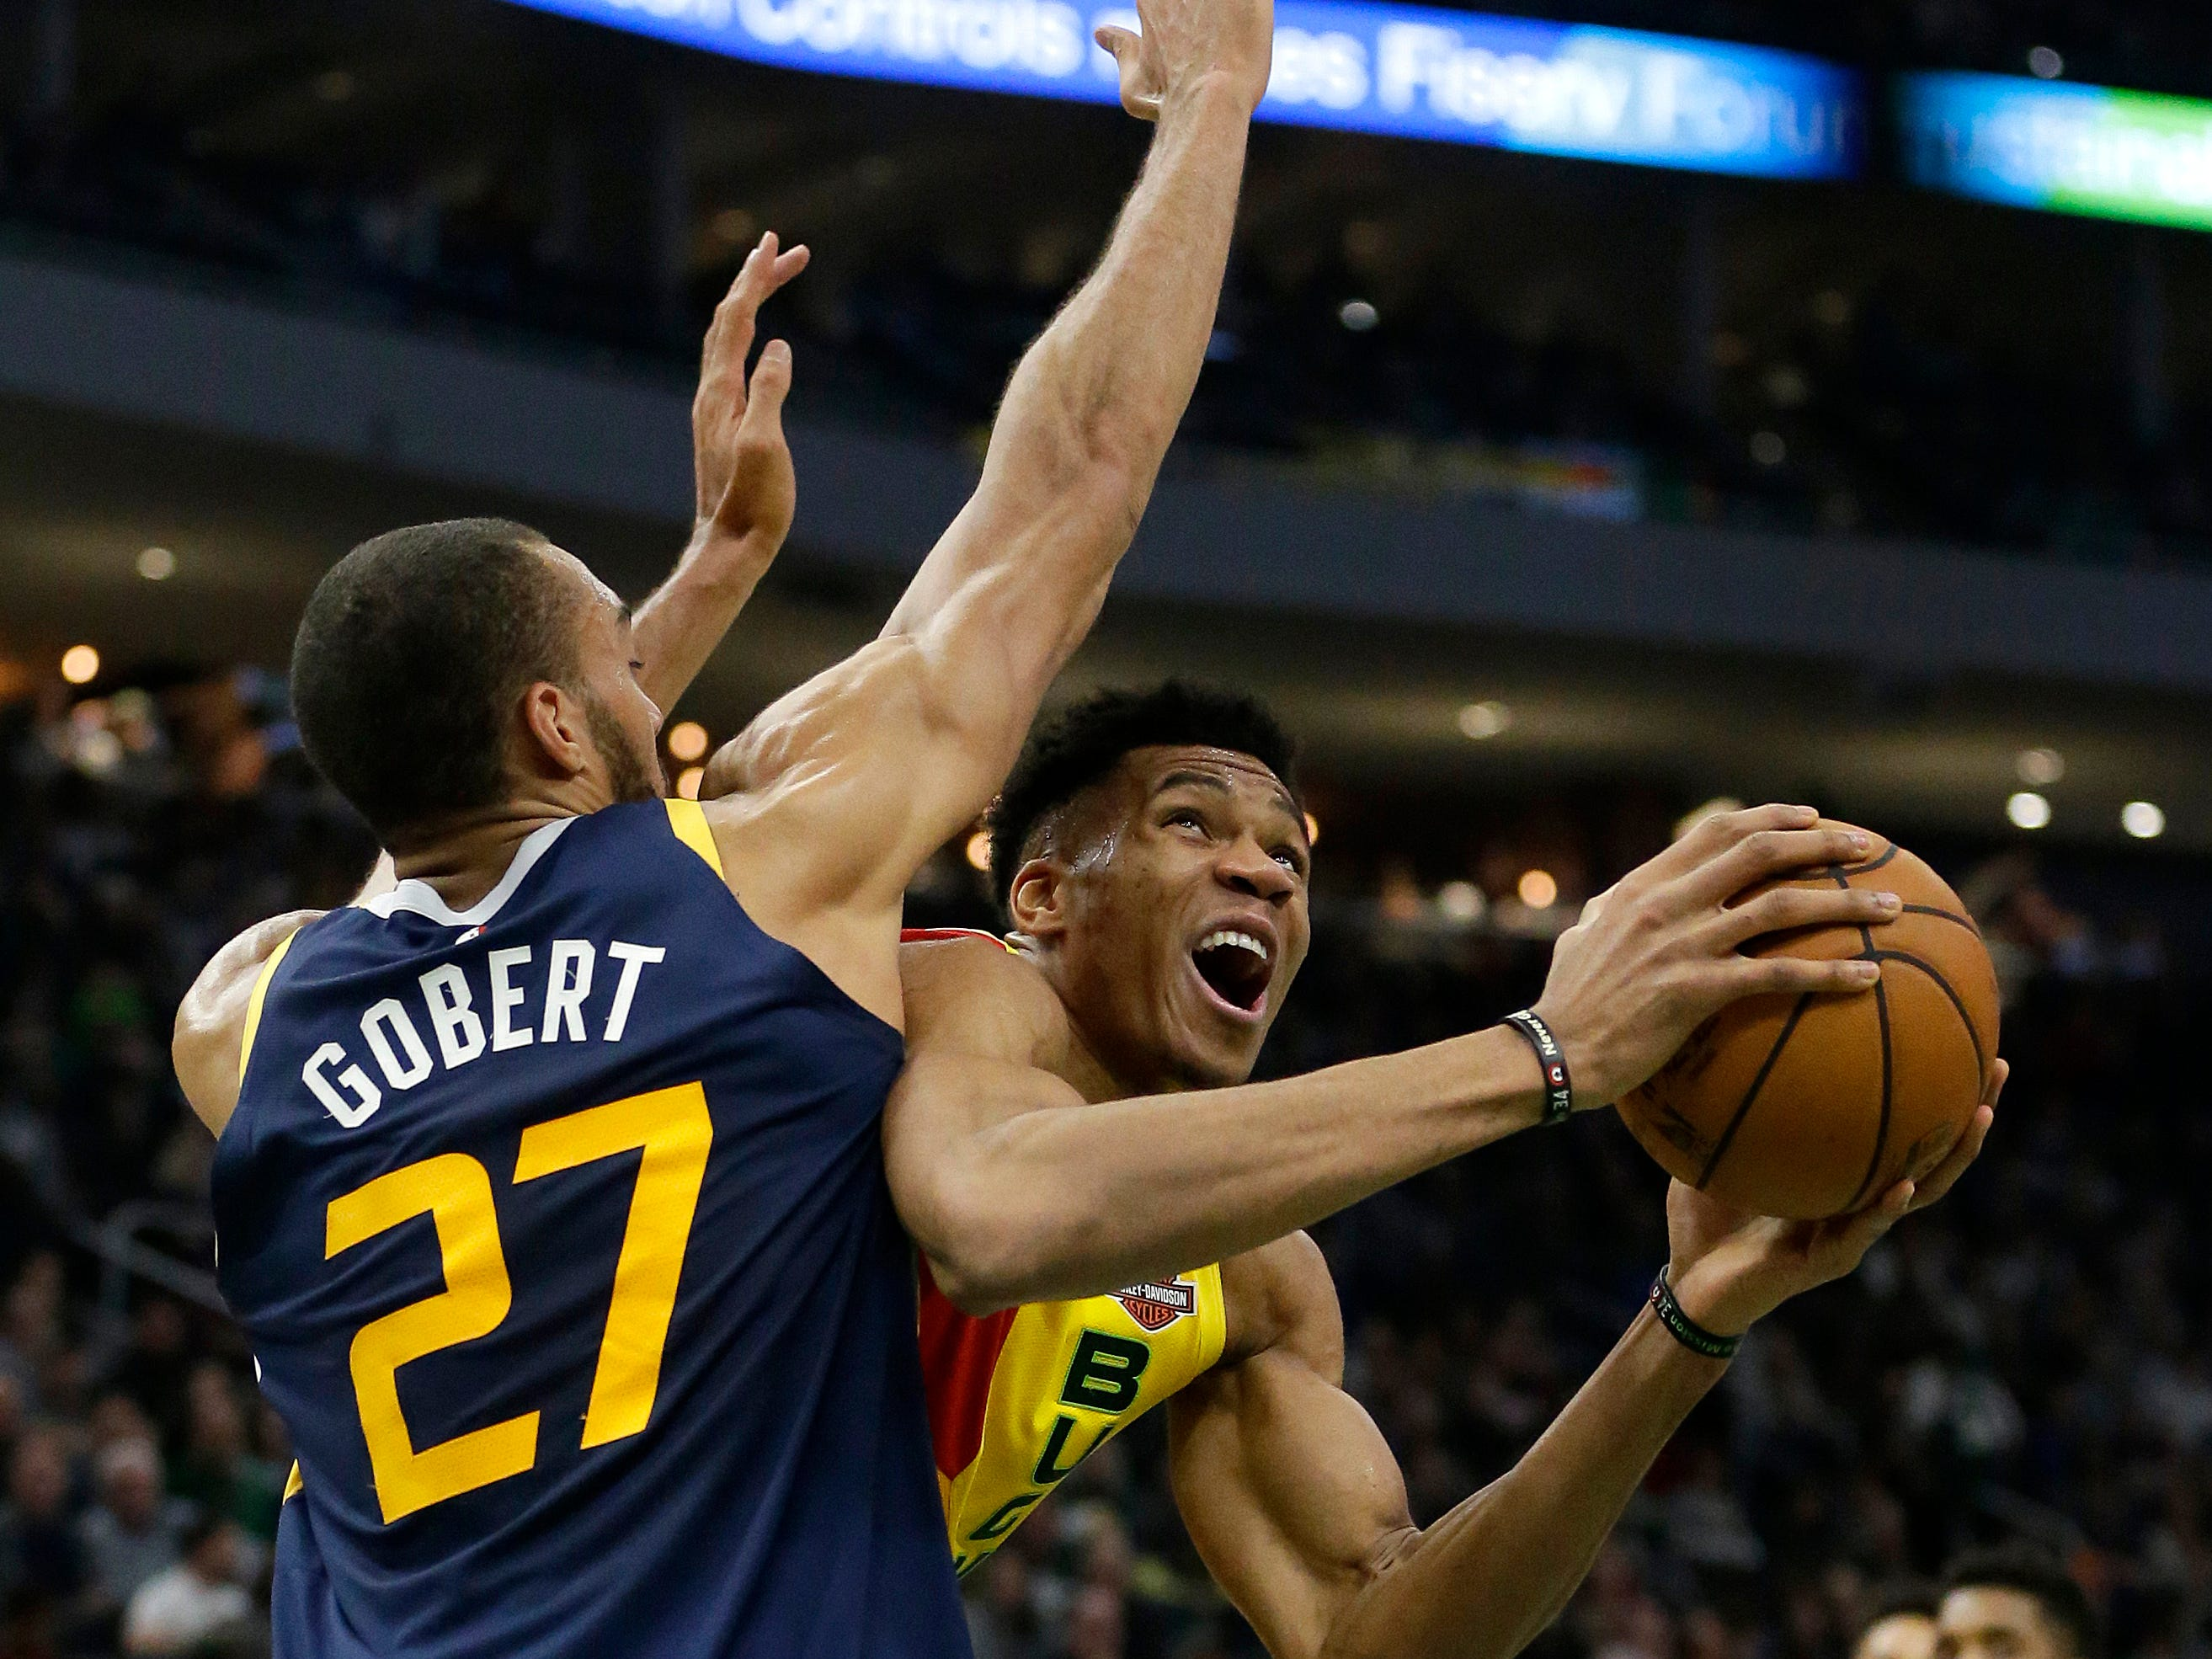 Giannis Antetokounmpo of the Bucks tries to get around the Jazz's Rudy Gobert for a shot on Monday.